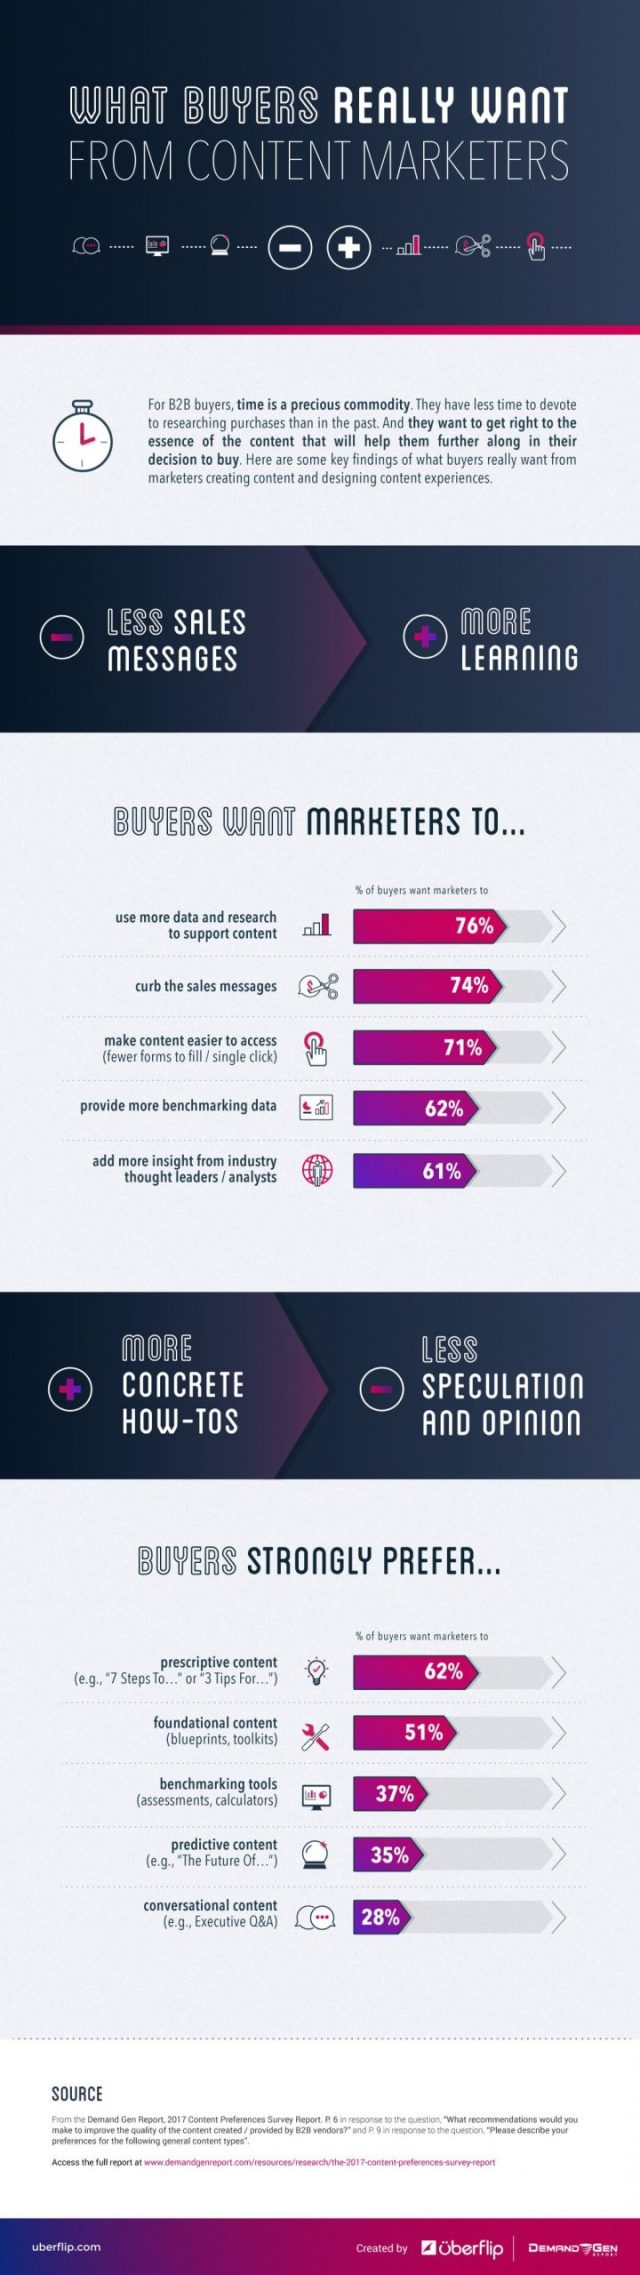 What Buyers Really Want From Marketers Infographic compressed